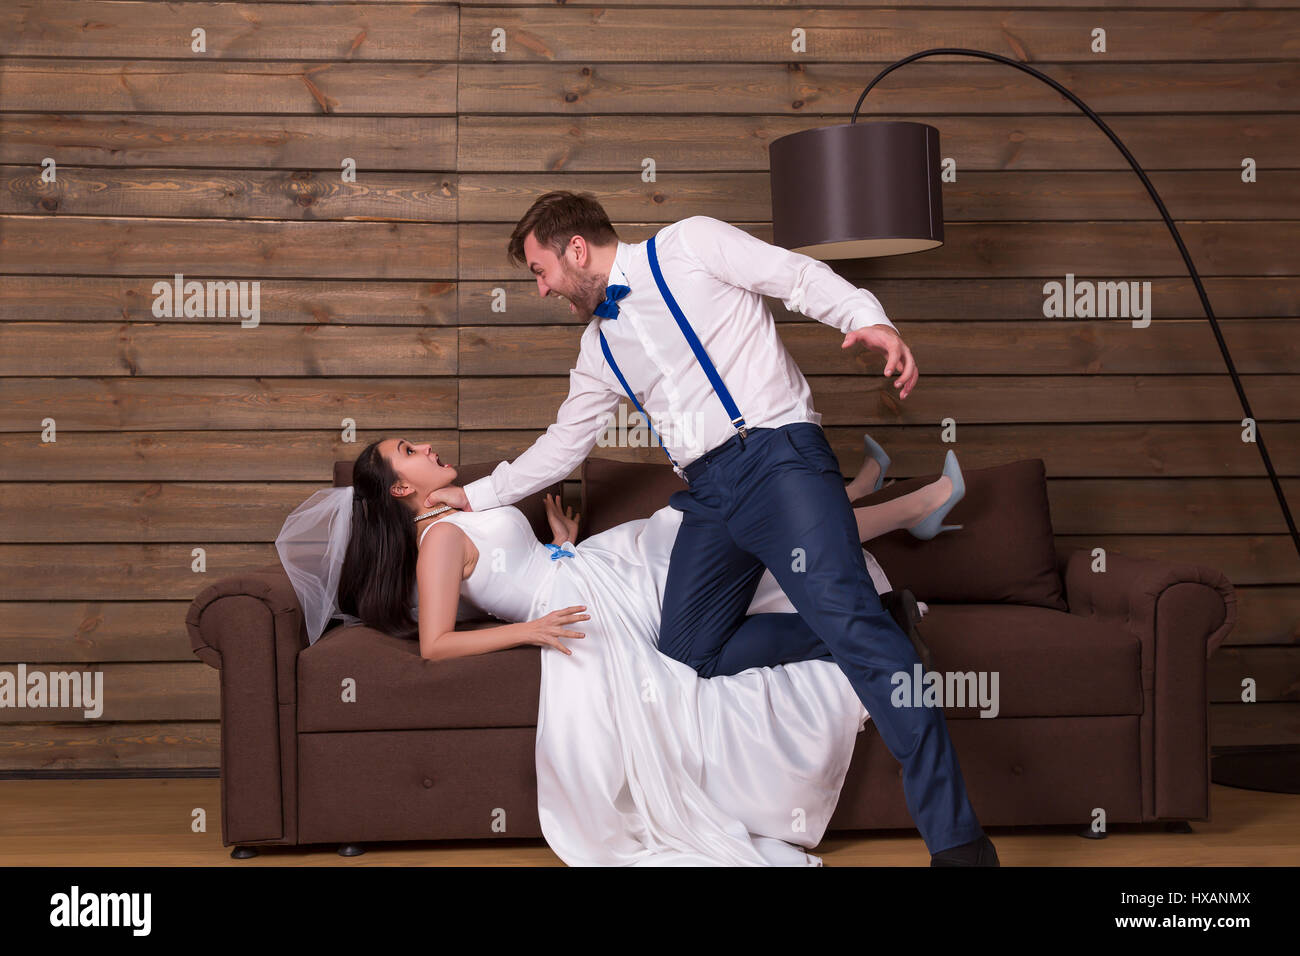 Groom trying to choke bride in white dress and veil, he shouting at her. Newlyweds complex relationship - Stock Image